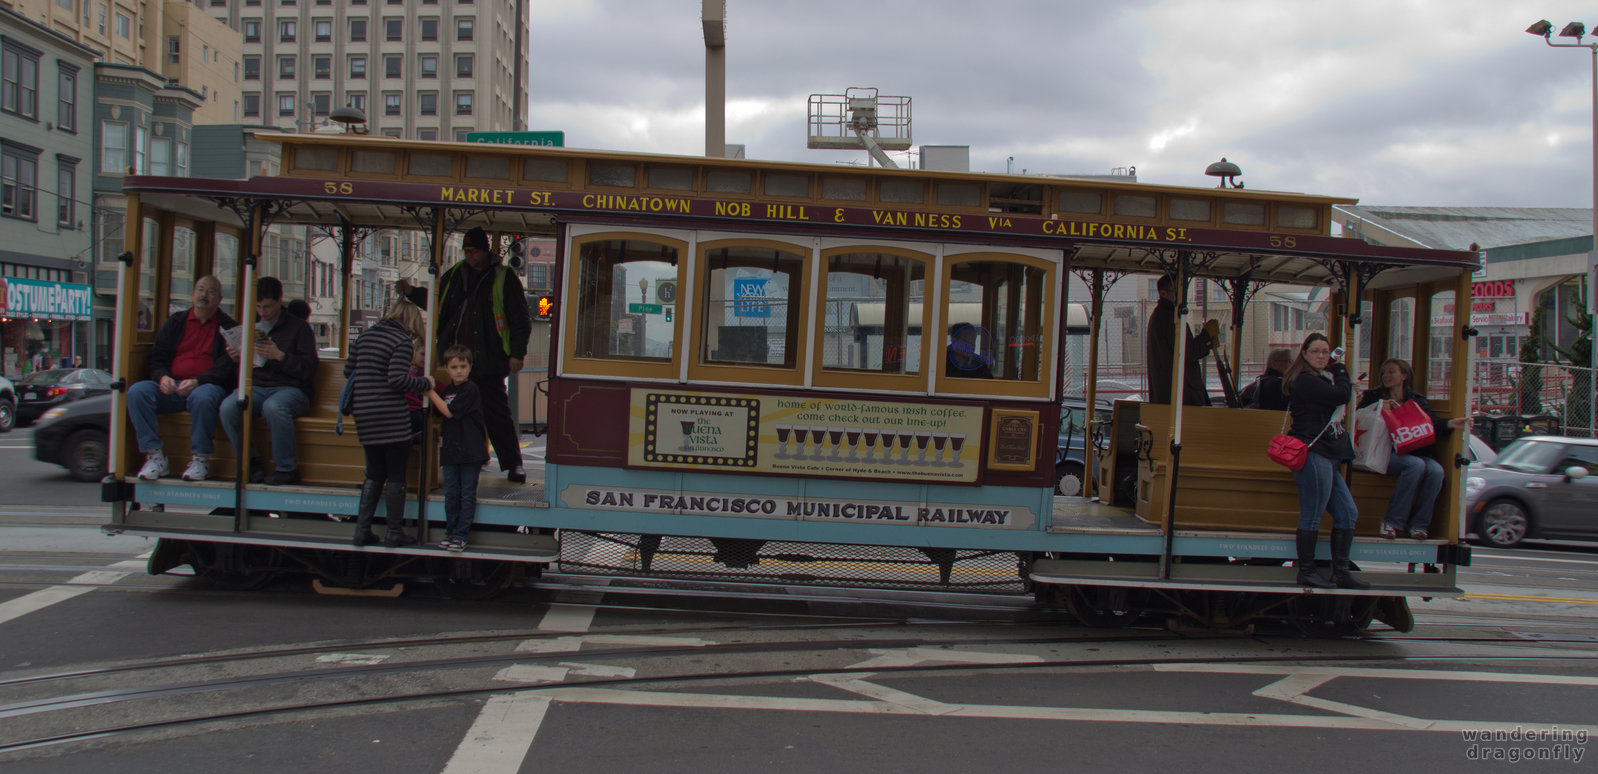 Cable car of California Street -- cable car, people, street